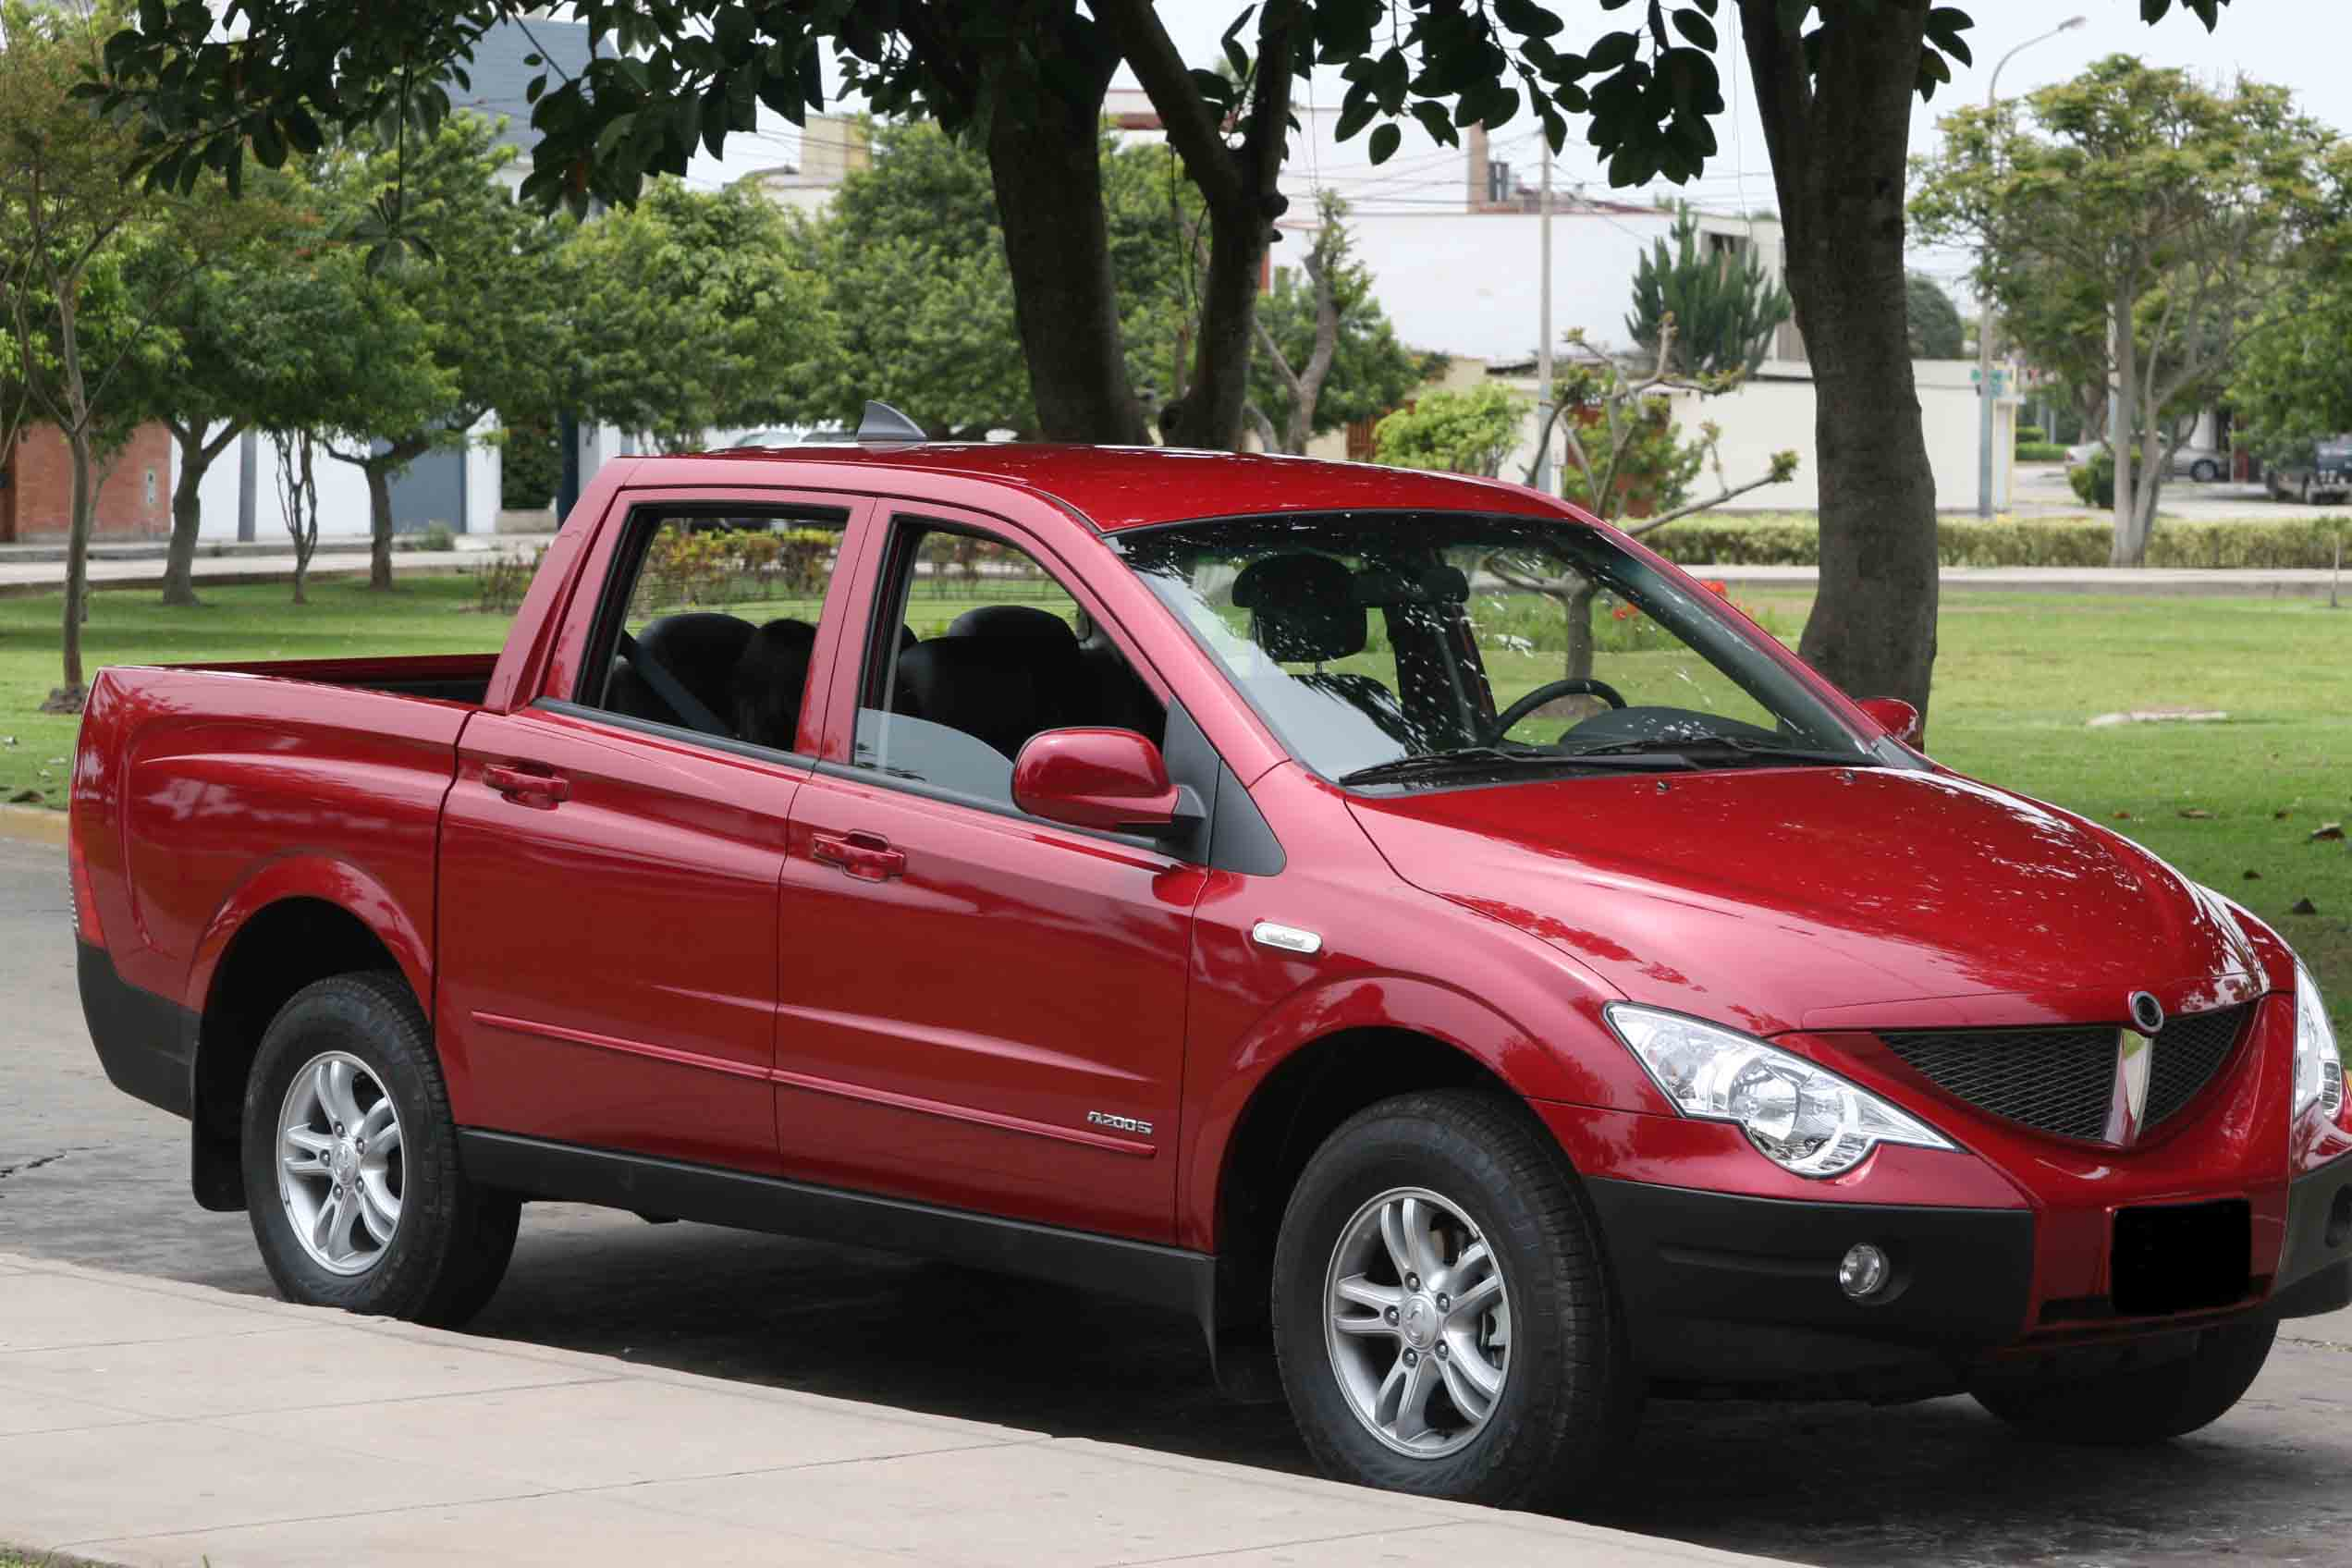 ssangyong actyon sports 2006 images